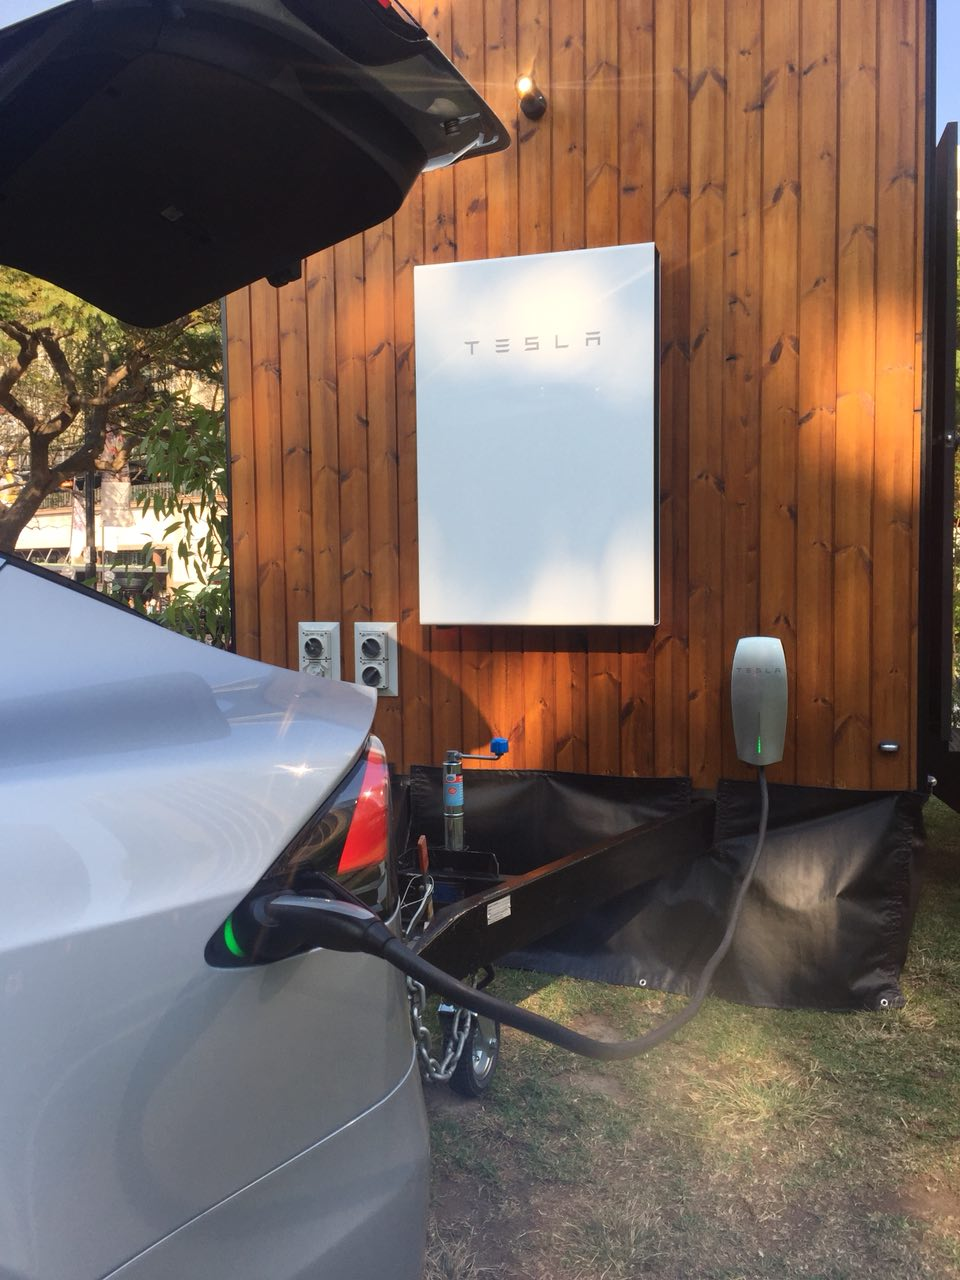 CHARGING THE CAR from the Powerwall!!!